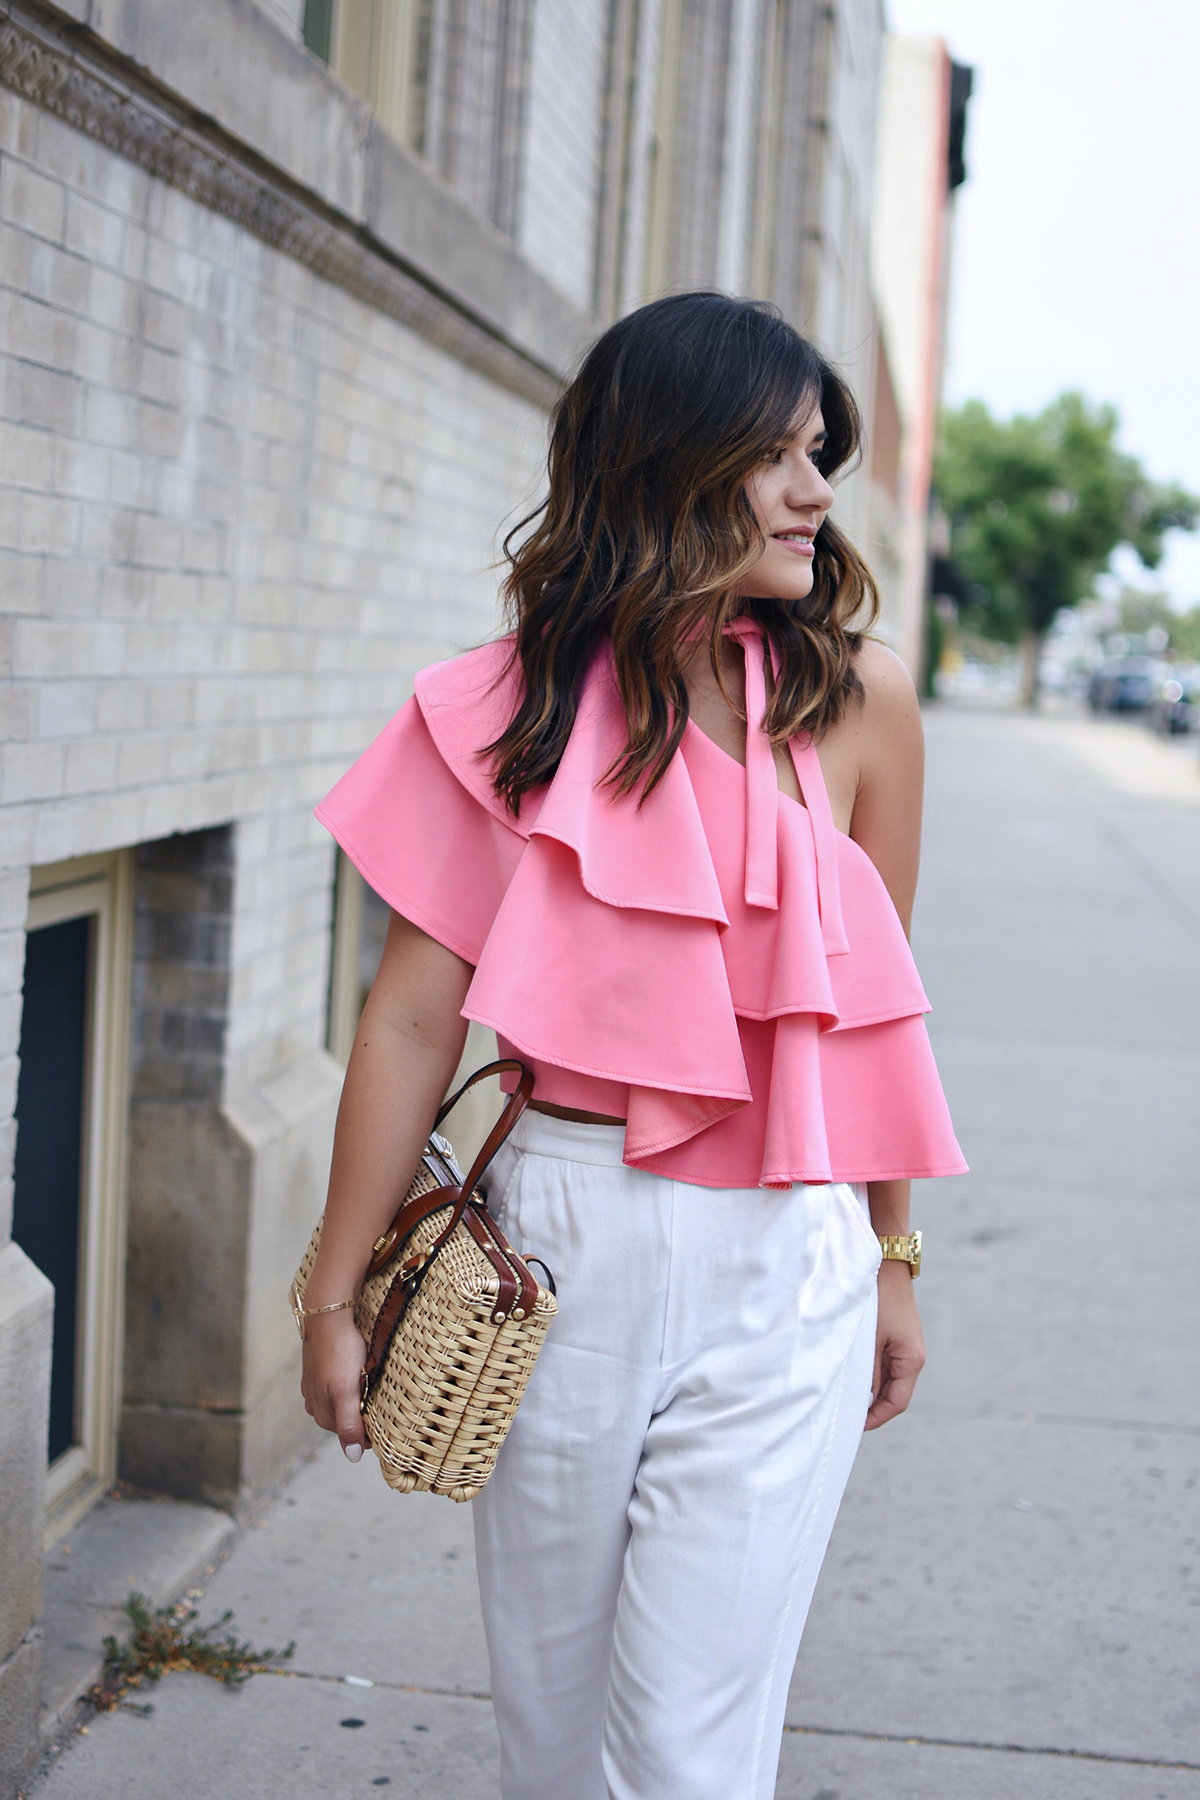 f673f2e0f5d Carolina Hellal of Chic Talk wearing an off the shoulder pink ruffle top  with white pants